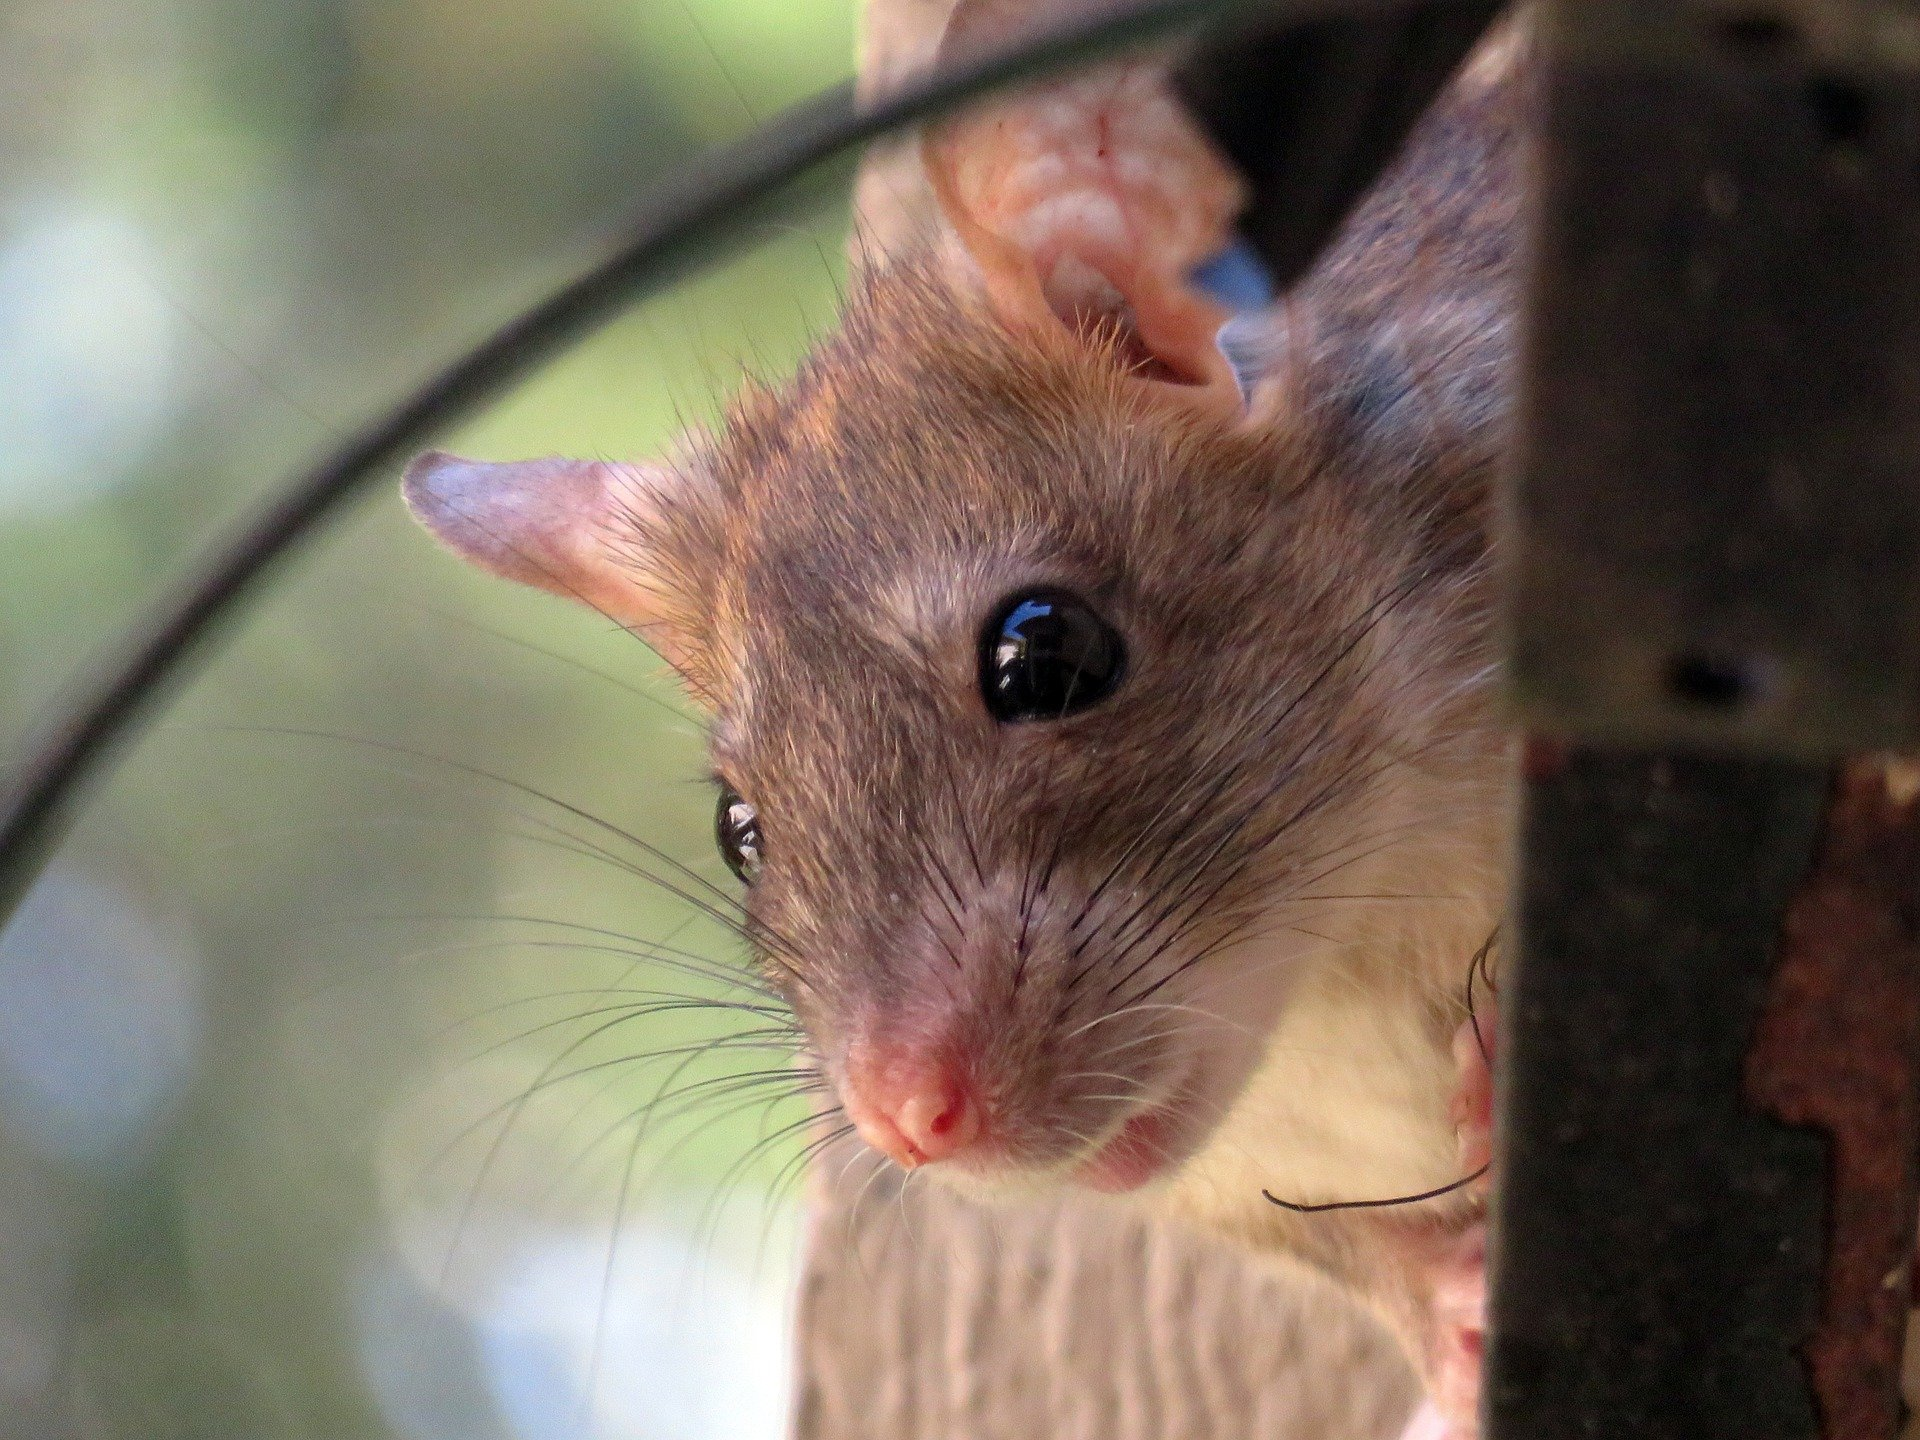 How To Prevent Rats From Entering Your Home